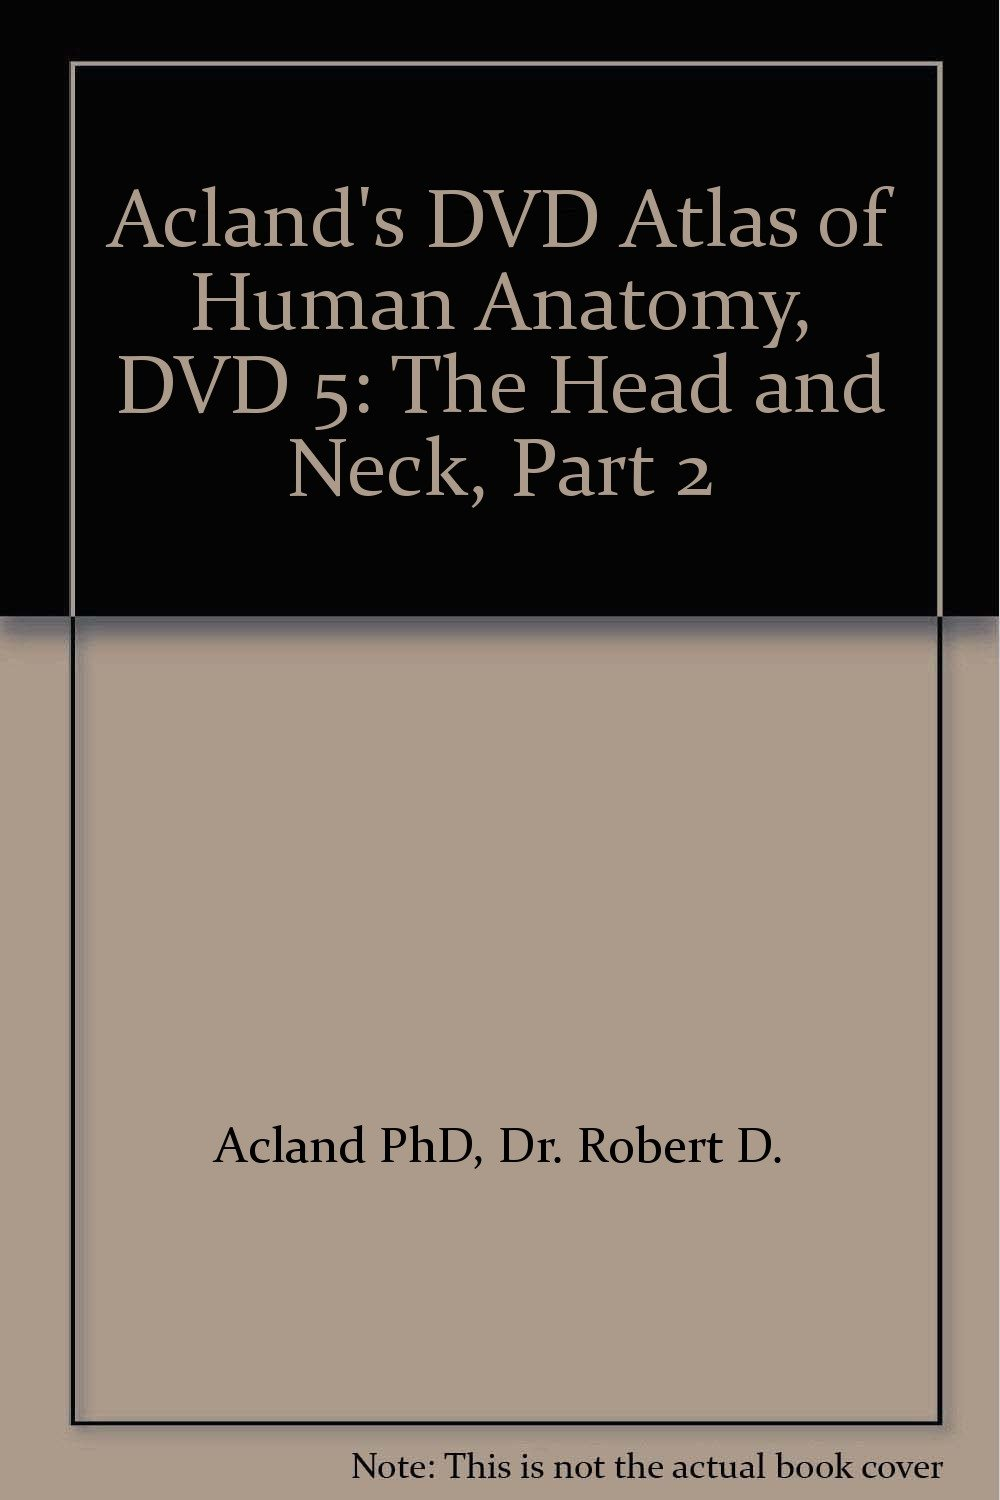 Aclands Dvd Atlas Of Human Anatomy Head And Neck Dvd 5 Pt 2 The